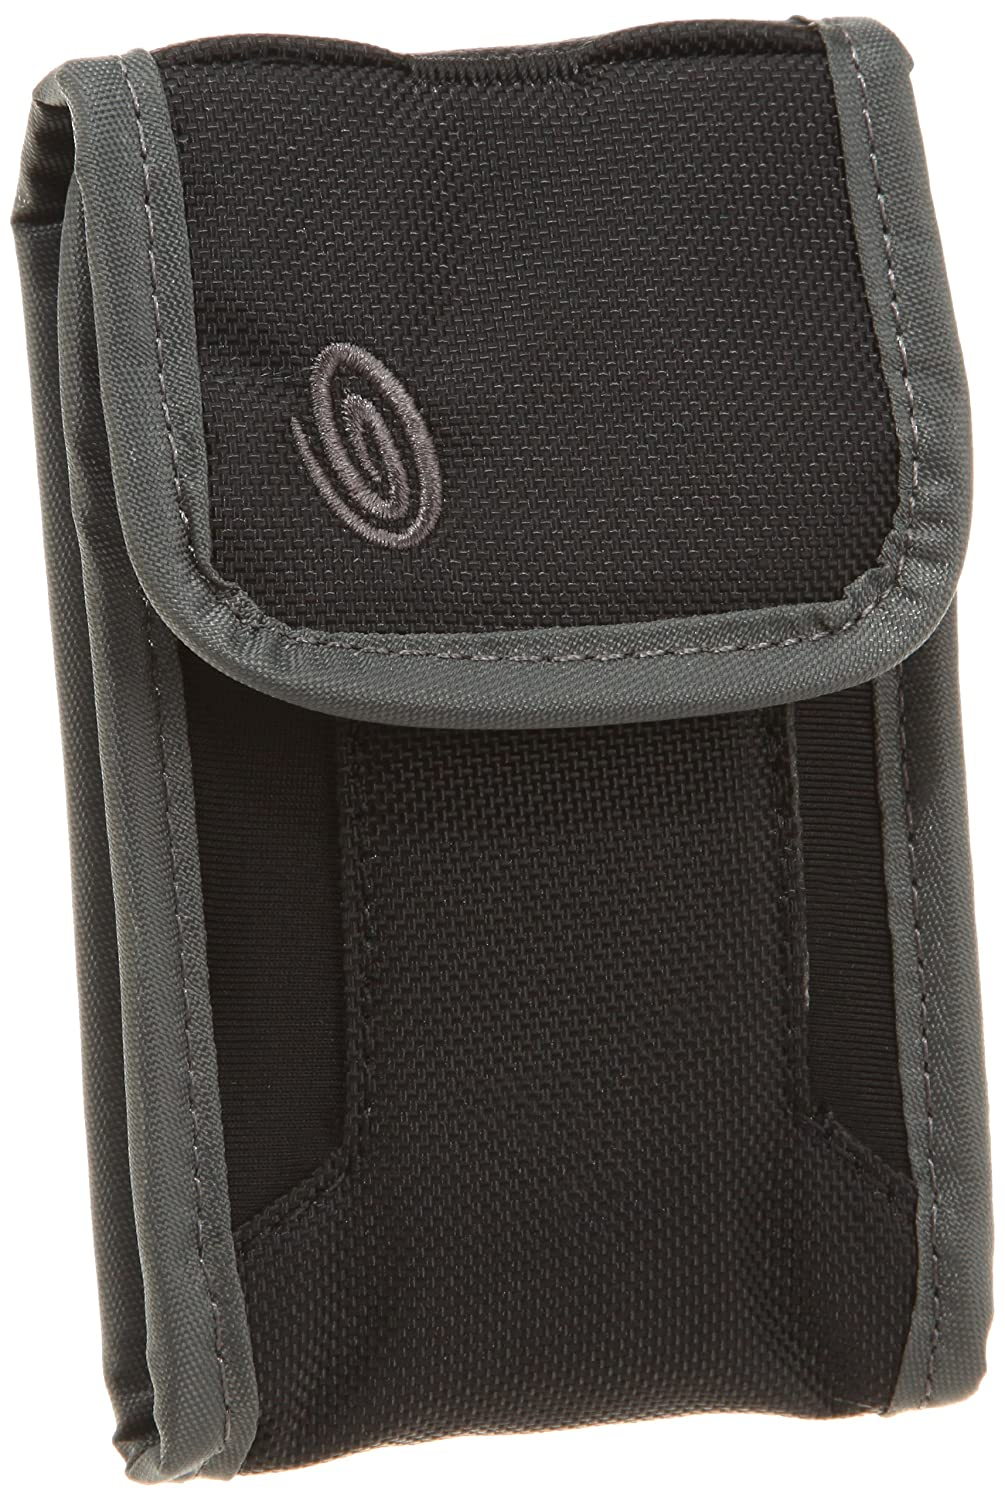 Timbuk2 3 Way Accessory Bag, Black/Gunmetal , Small